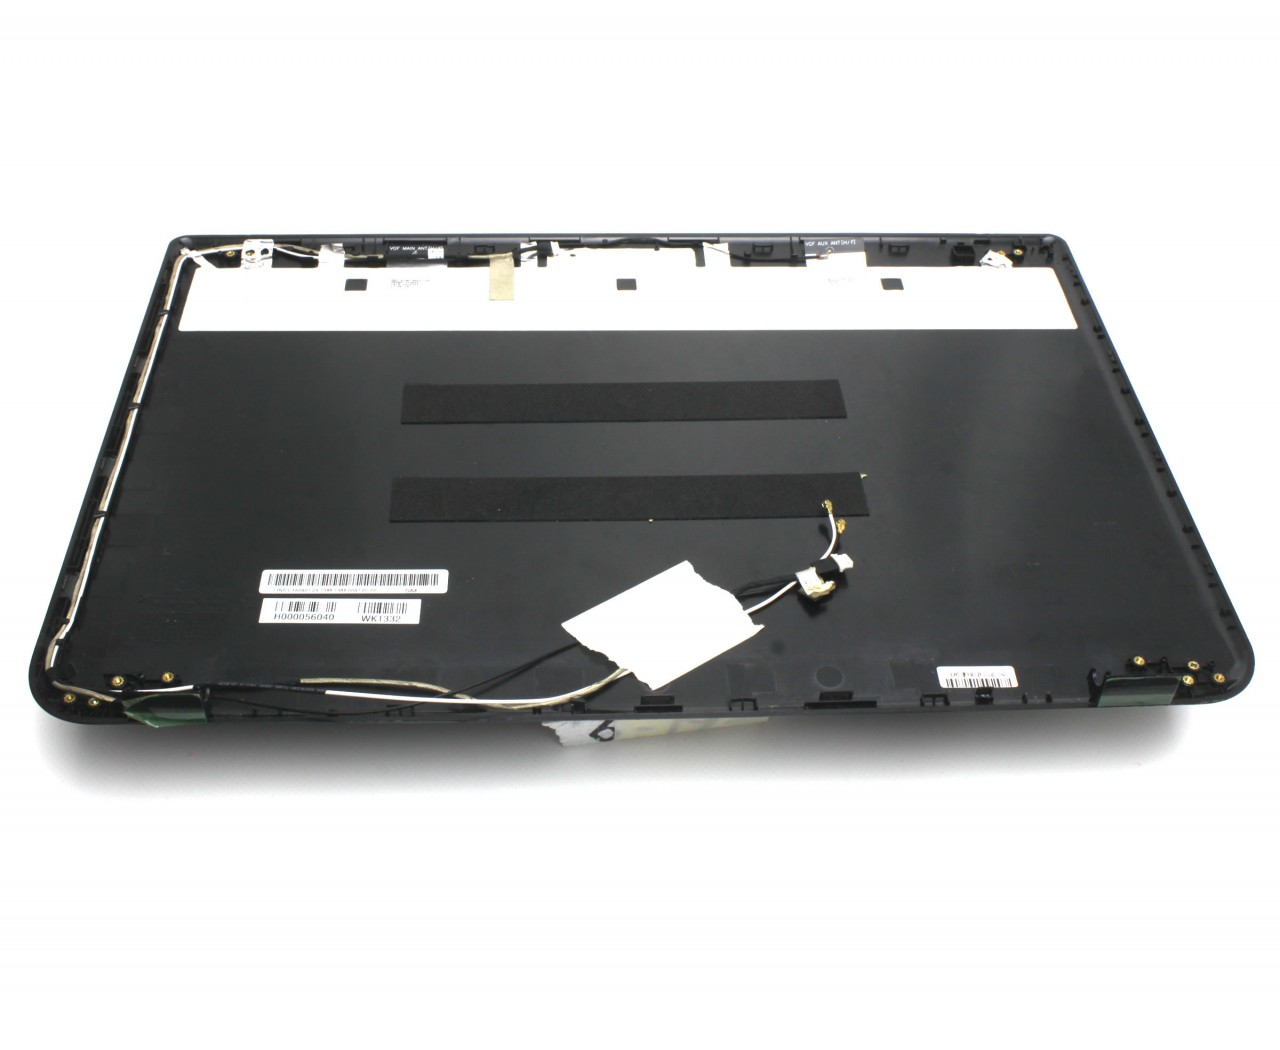 Capac Display BackCover Toshiba Satellite L50 A series Carcasa Display Neagra imagine powerlaptop.ro 2021